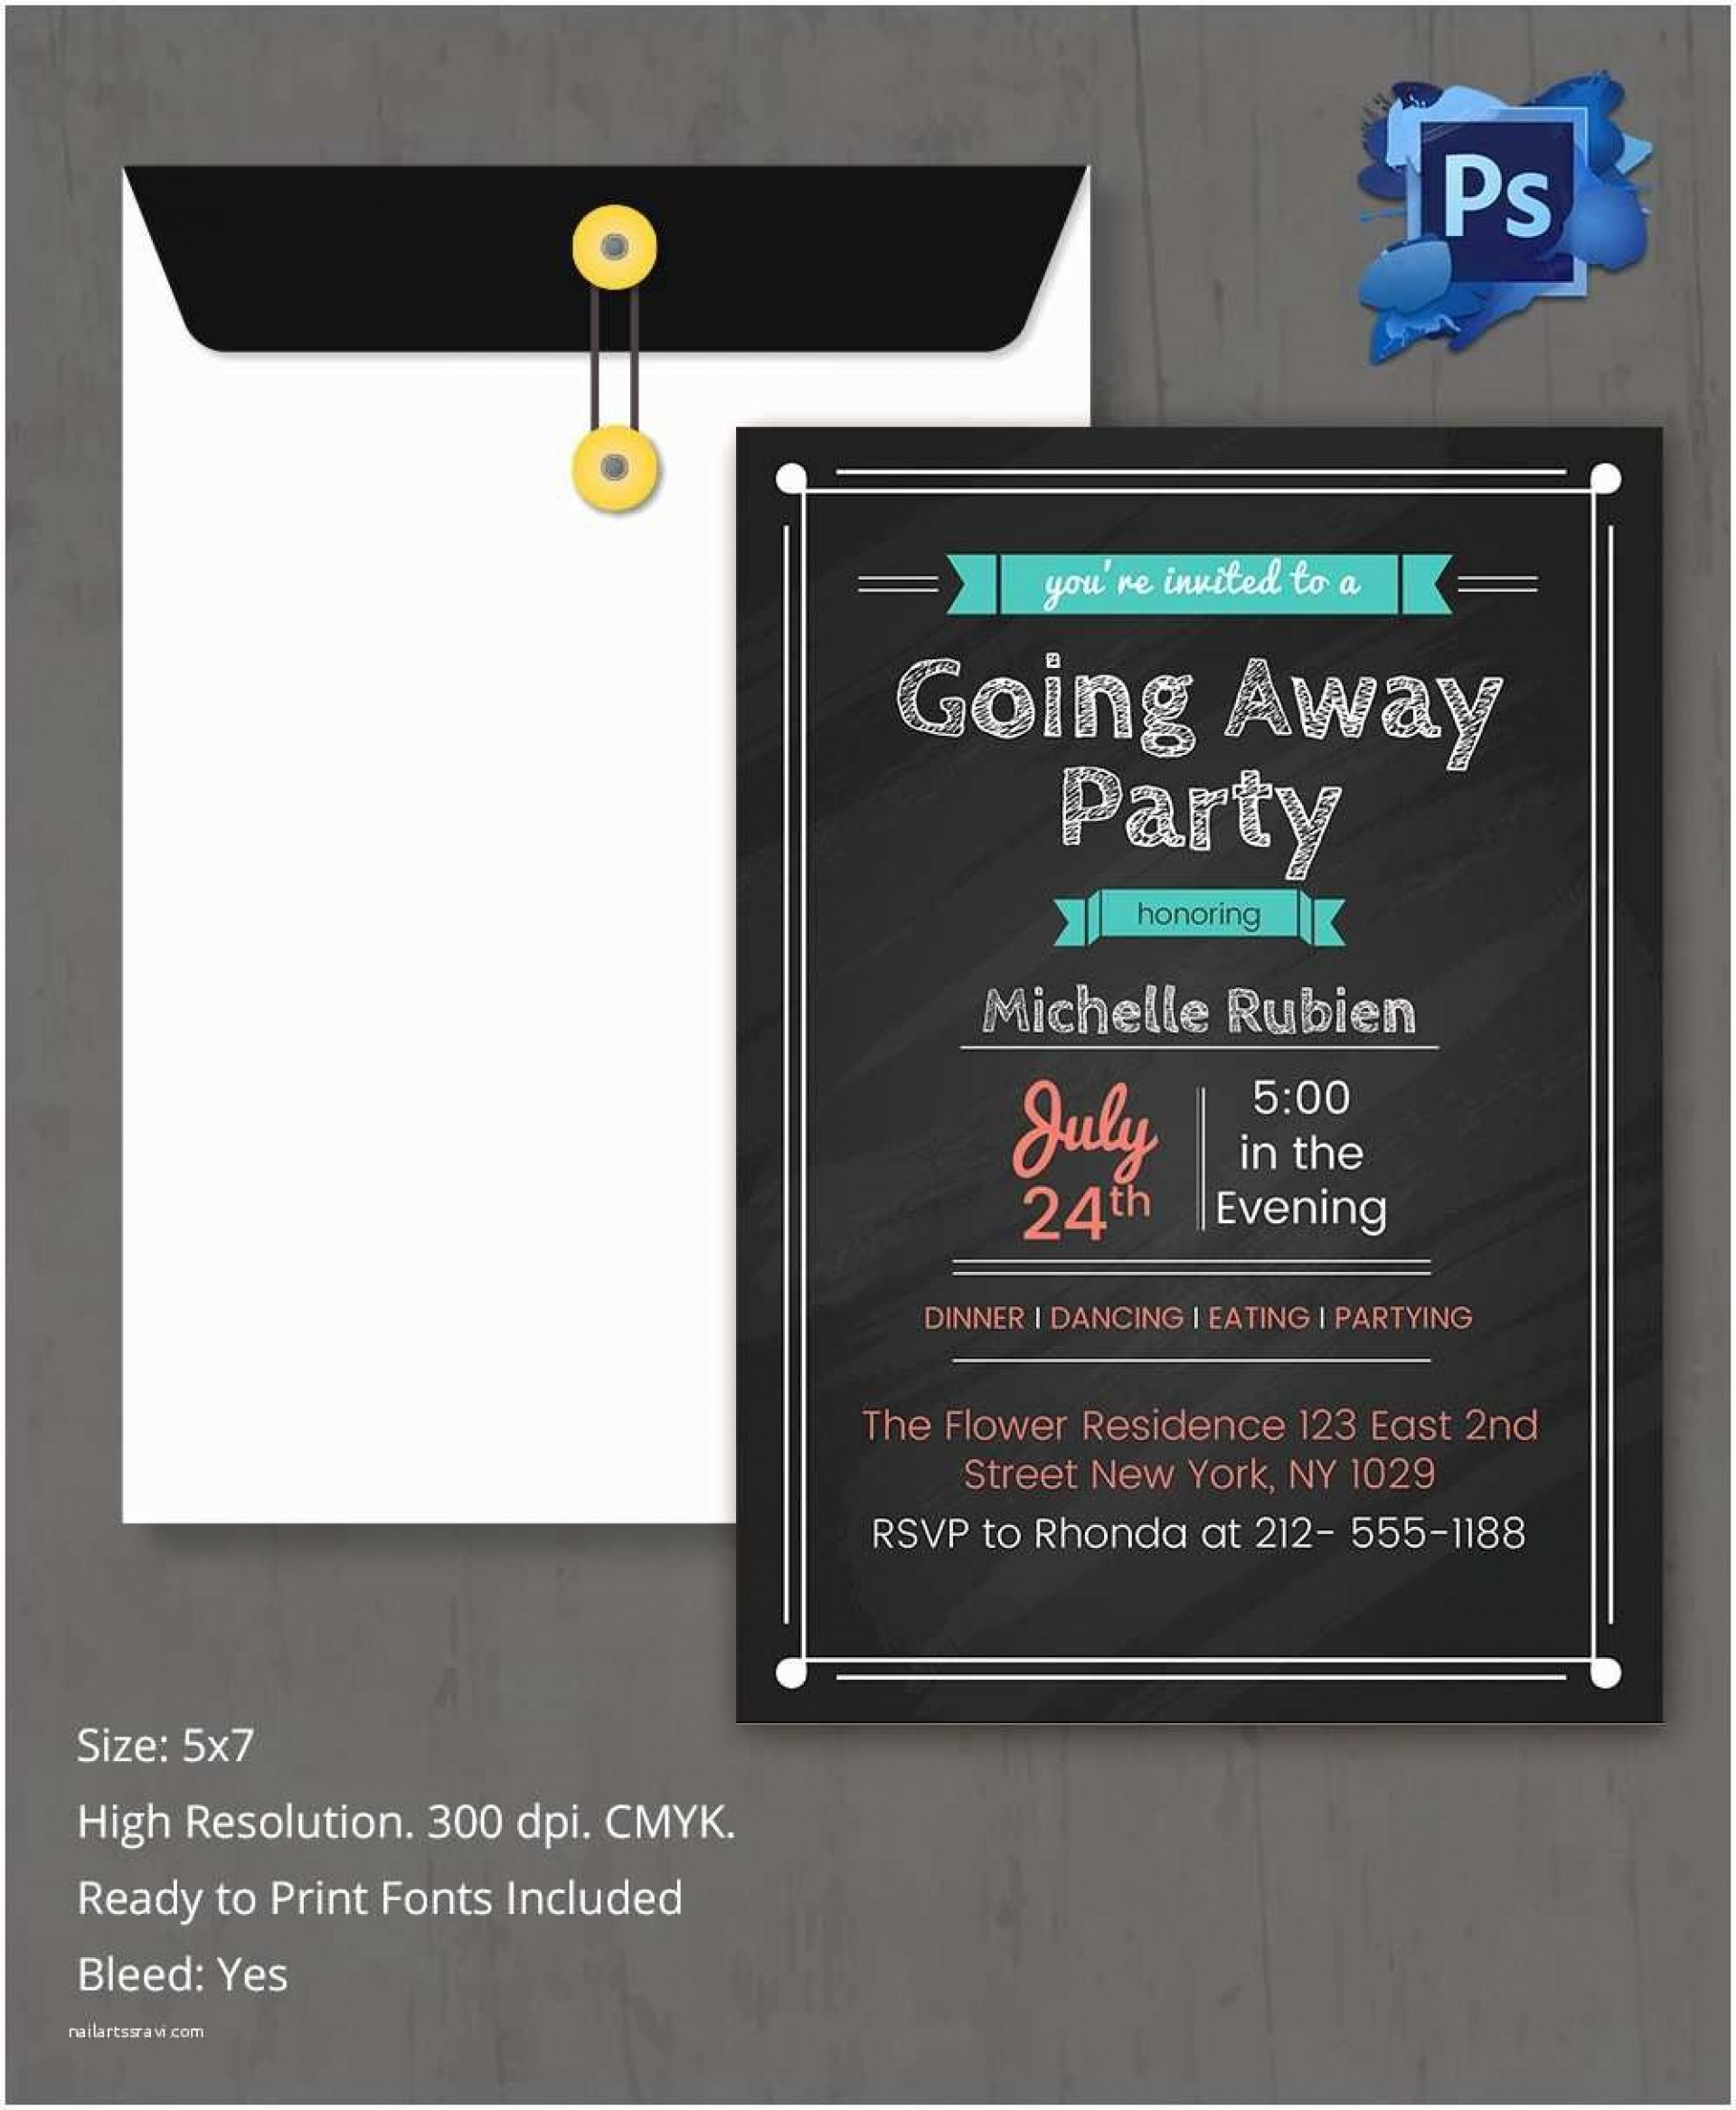 009 Simple Going Away Party Invitation Template Idea  Free Printable1920